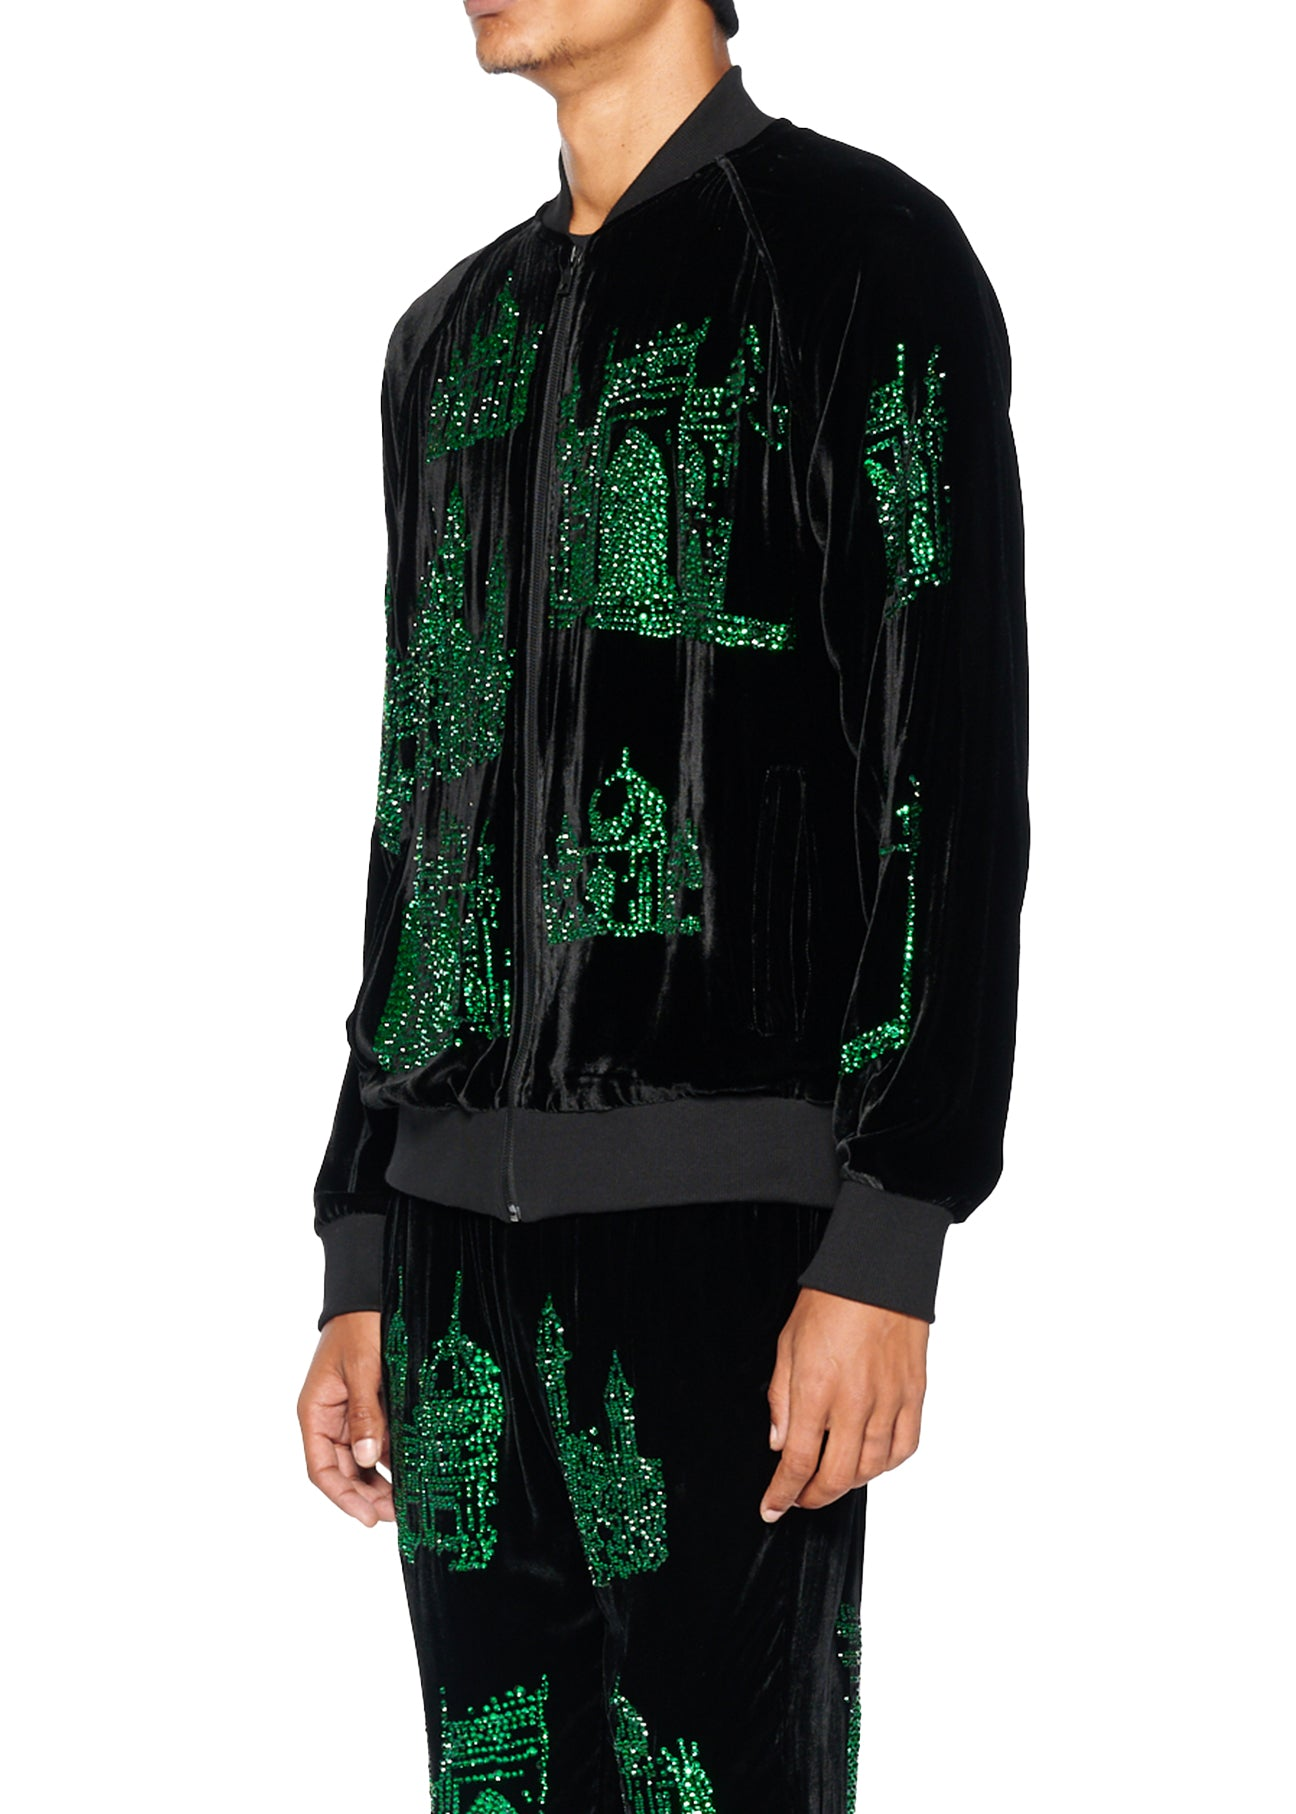 'GREEN TEMPLES' VELVET TRACK JACKET - Men's Jackets & Coats - Libertine